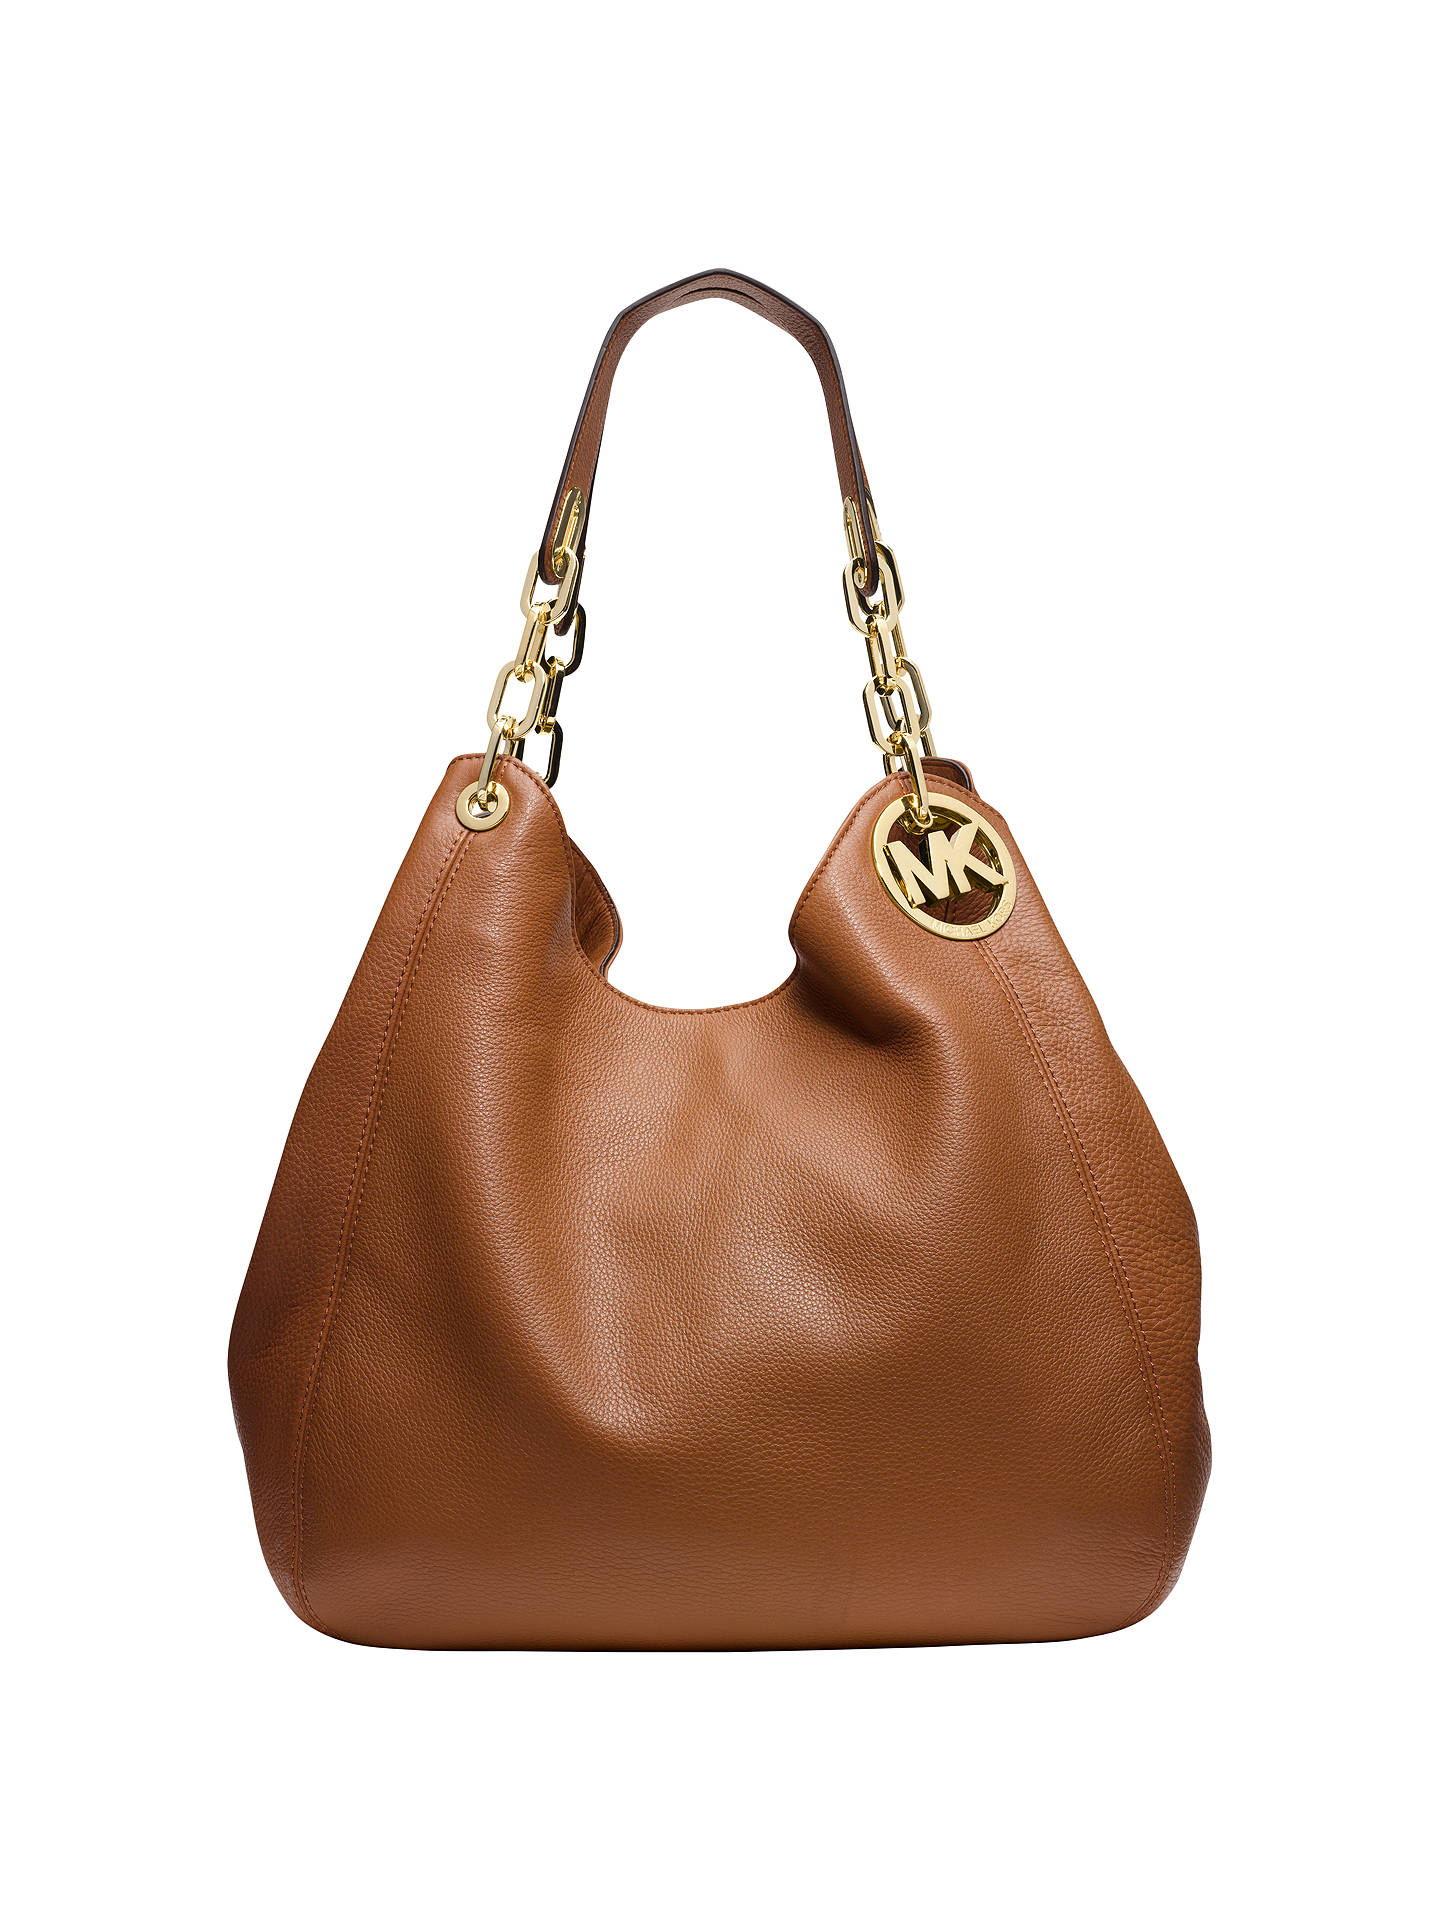 89d9f65e9adf Buy MICHAEL Michael Kors Fulton Leather Large Shoulder Bag, Acorn Online at  johnlewis.com ...